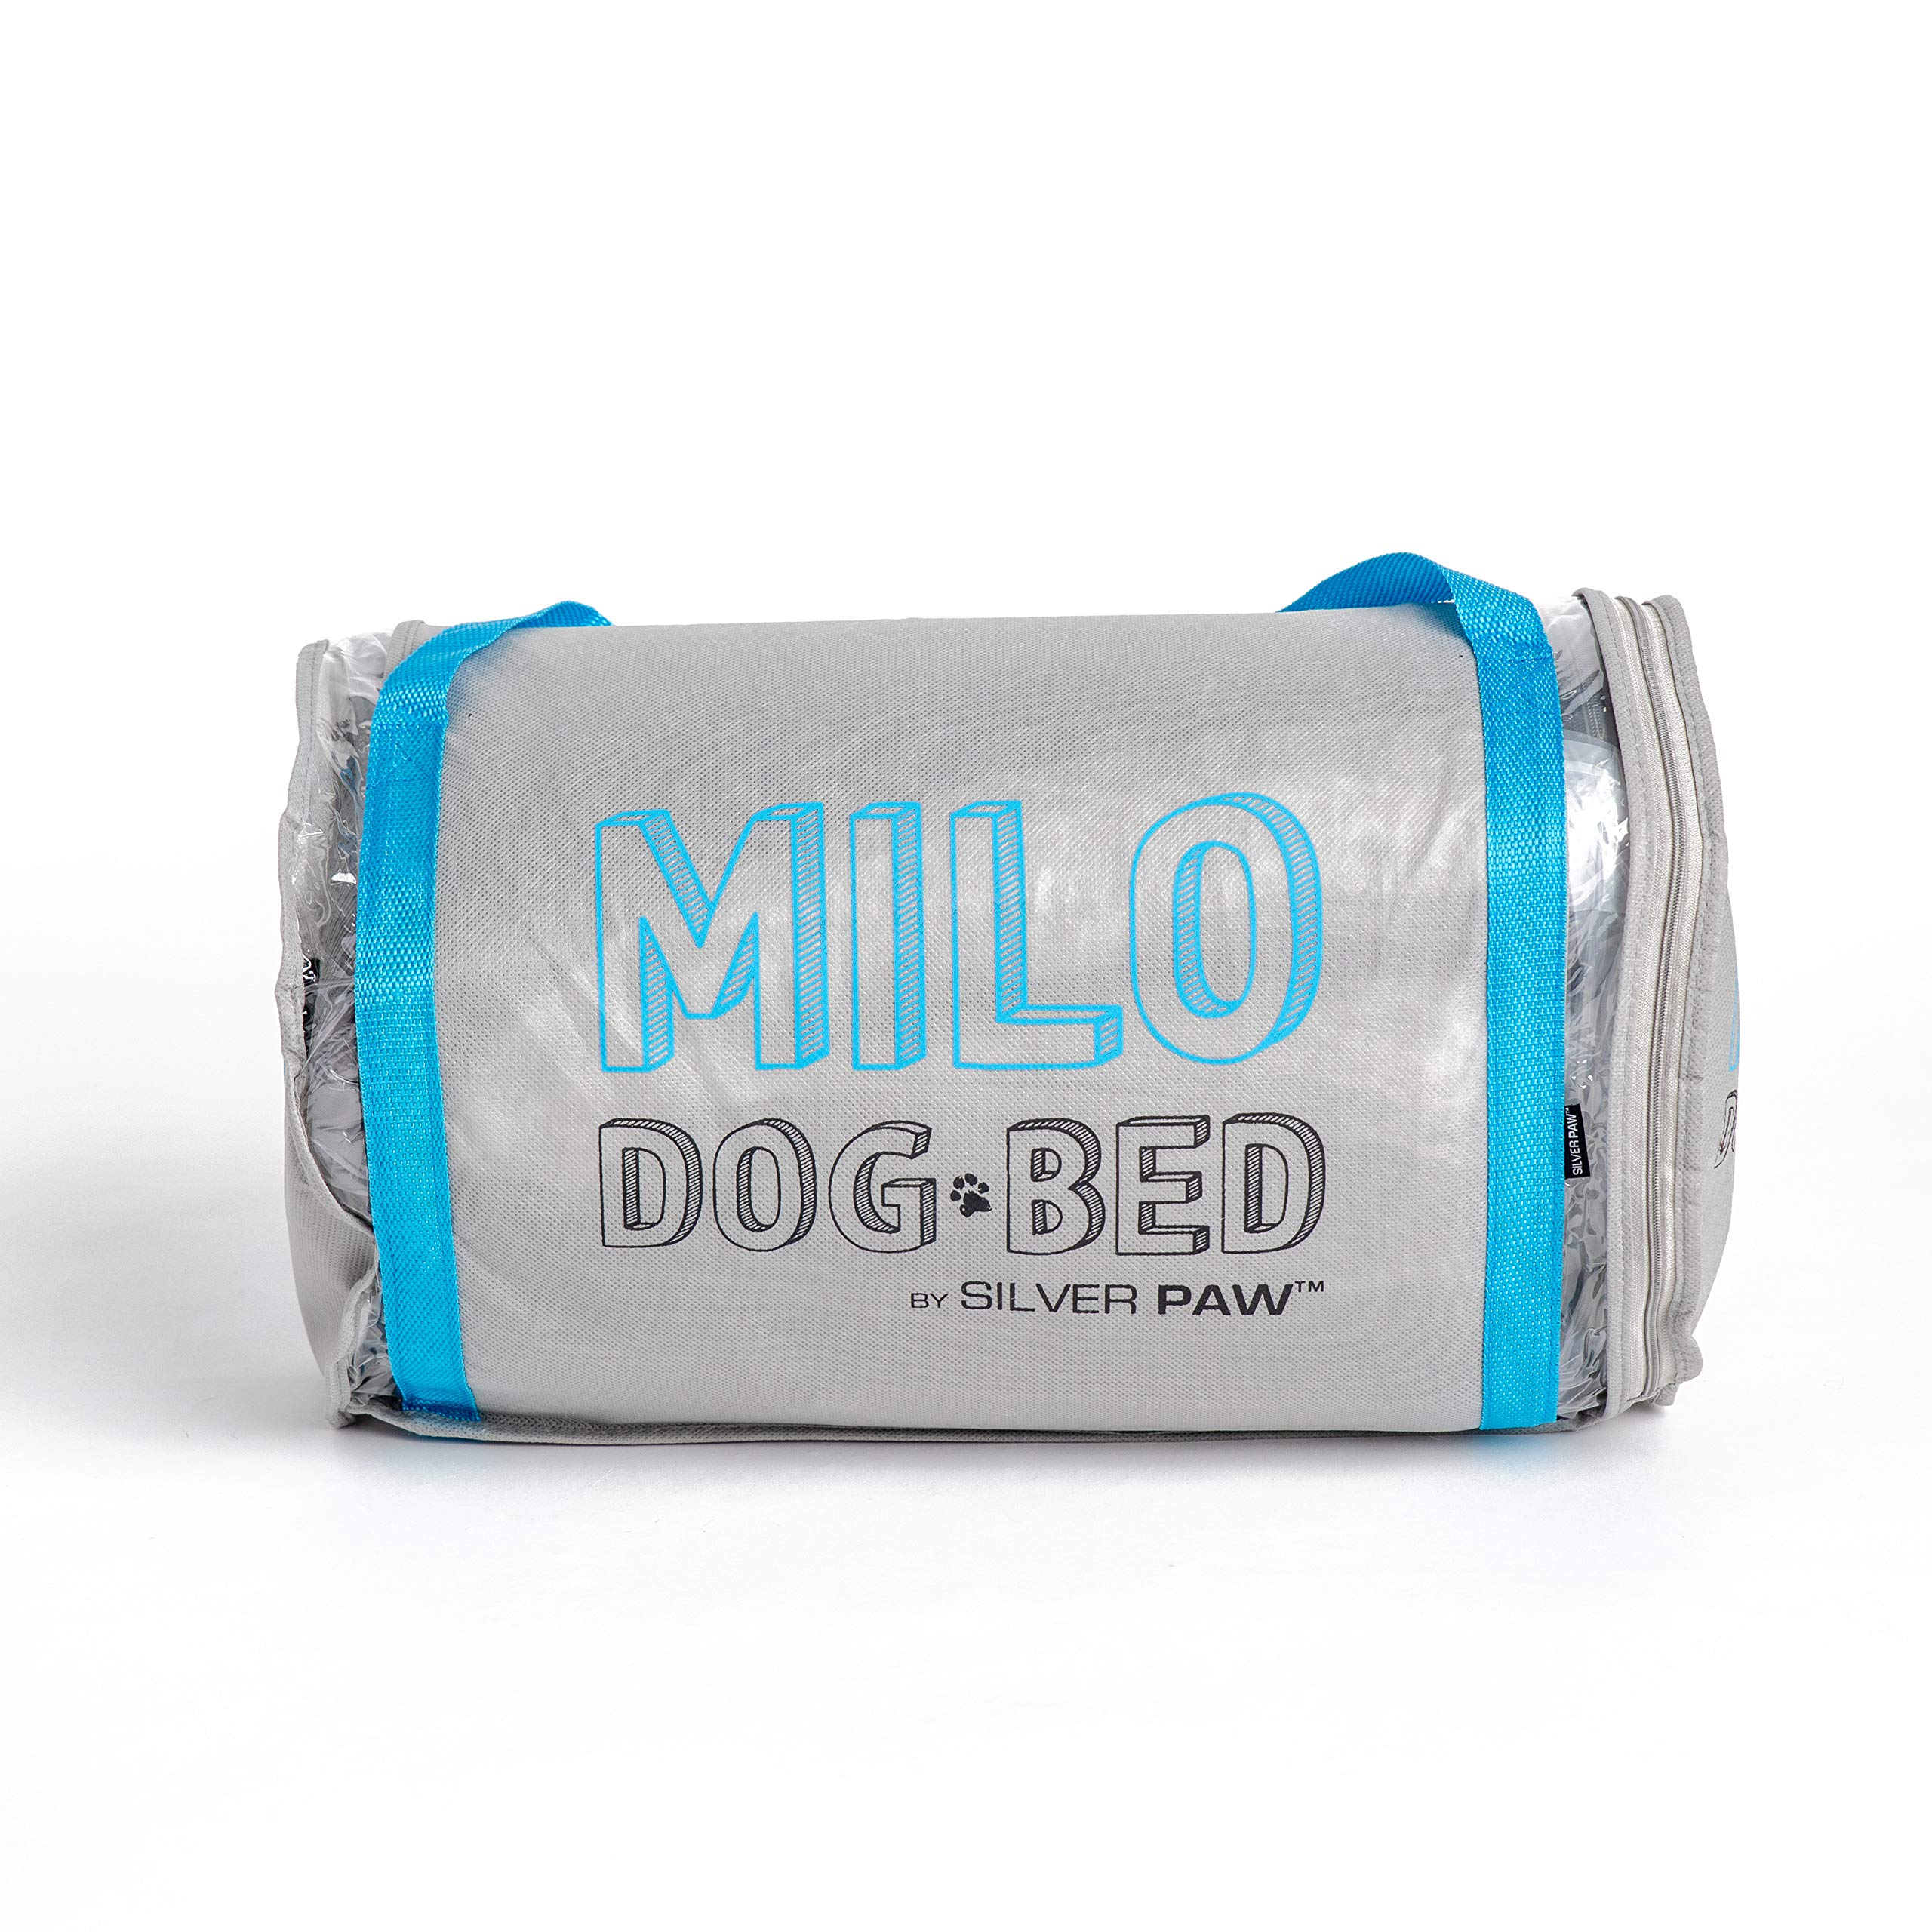 Milo Dog Bed Featuring SilverShield Technology & Lavender Sachet by Silver Paw